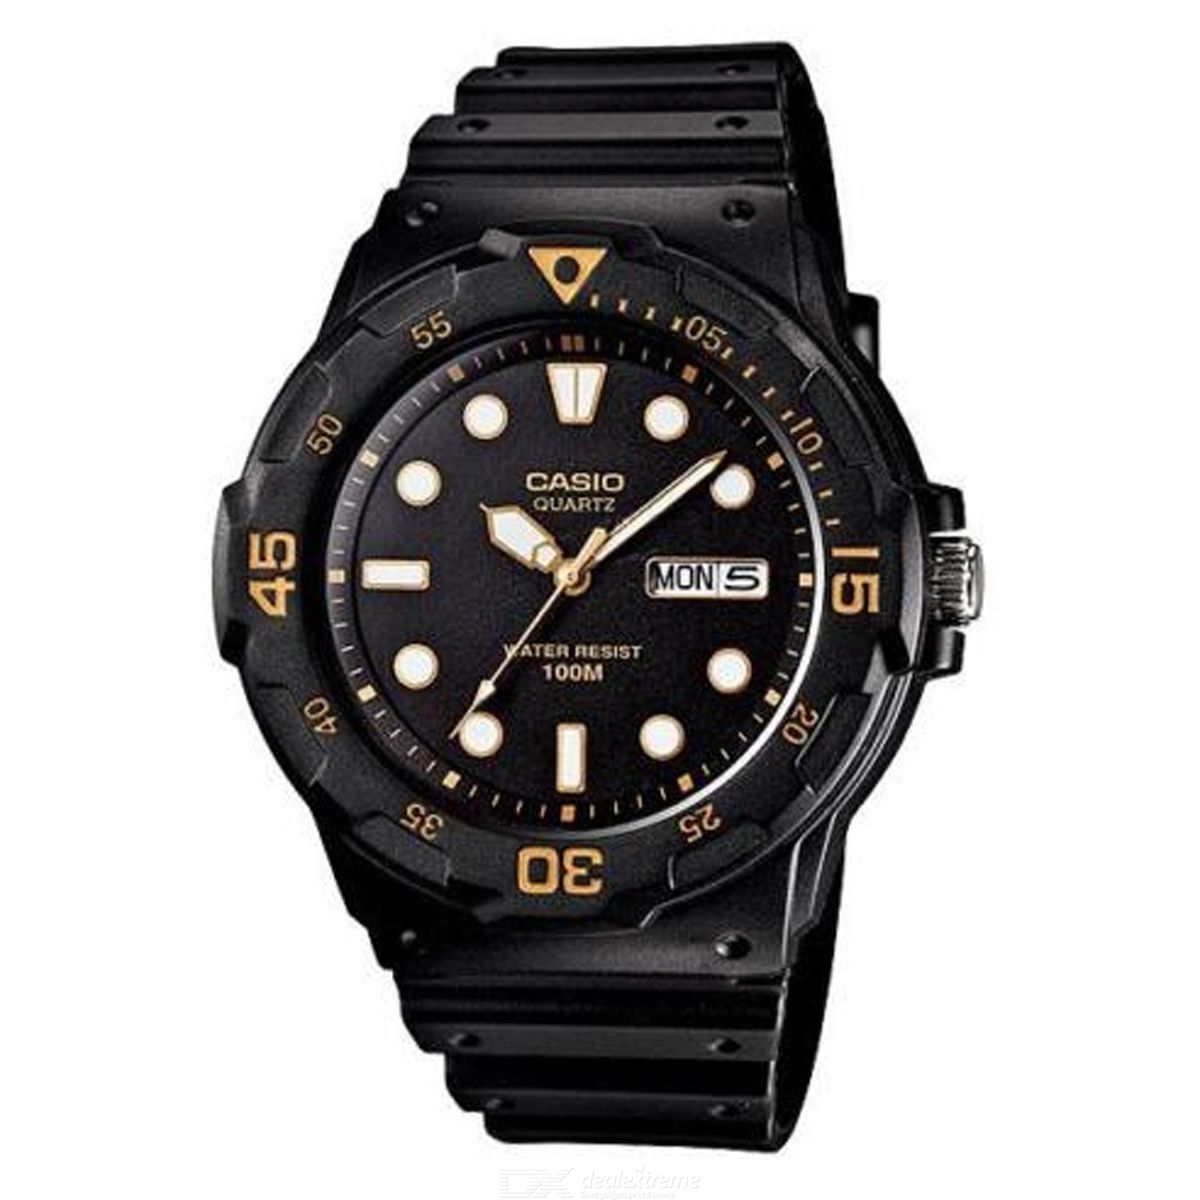 CASIO MRW-200H-1EVDF Resin Analog Watch - Black (Without Box)